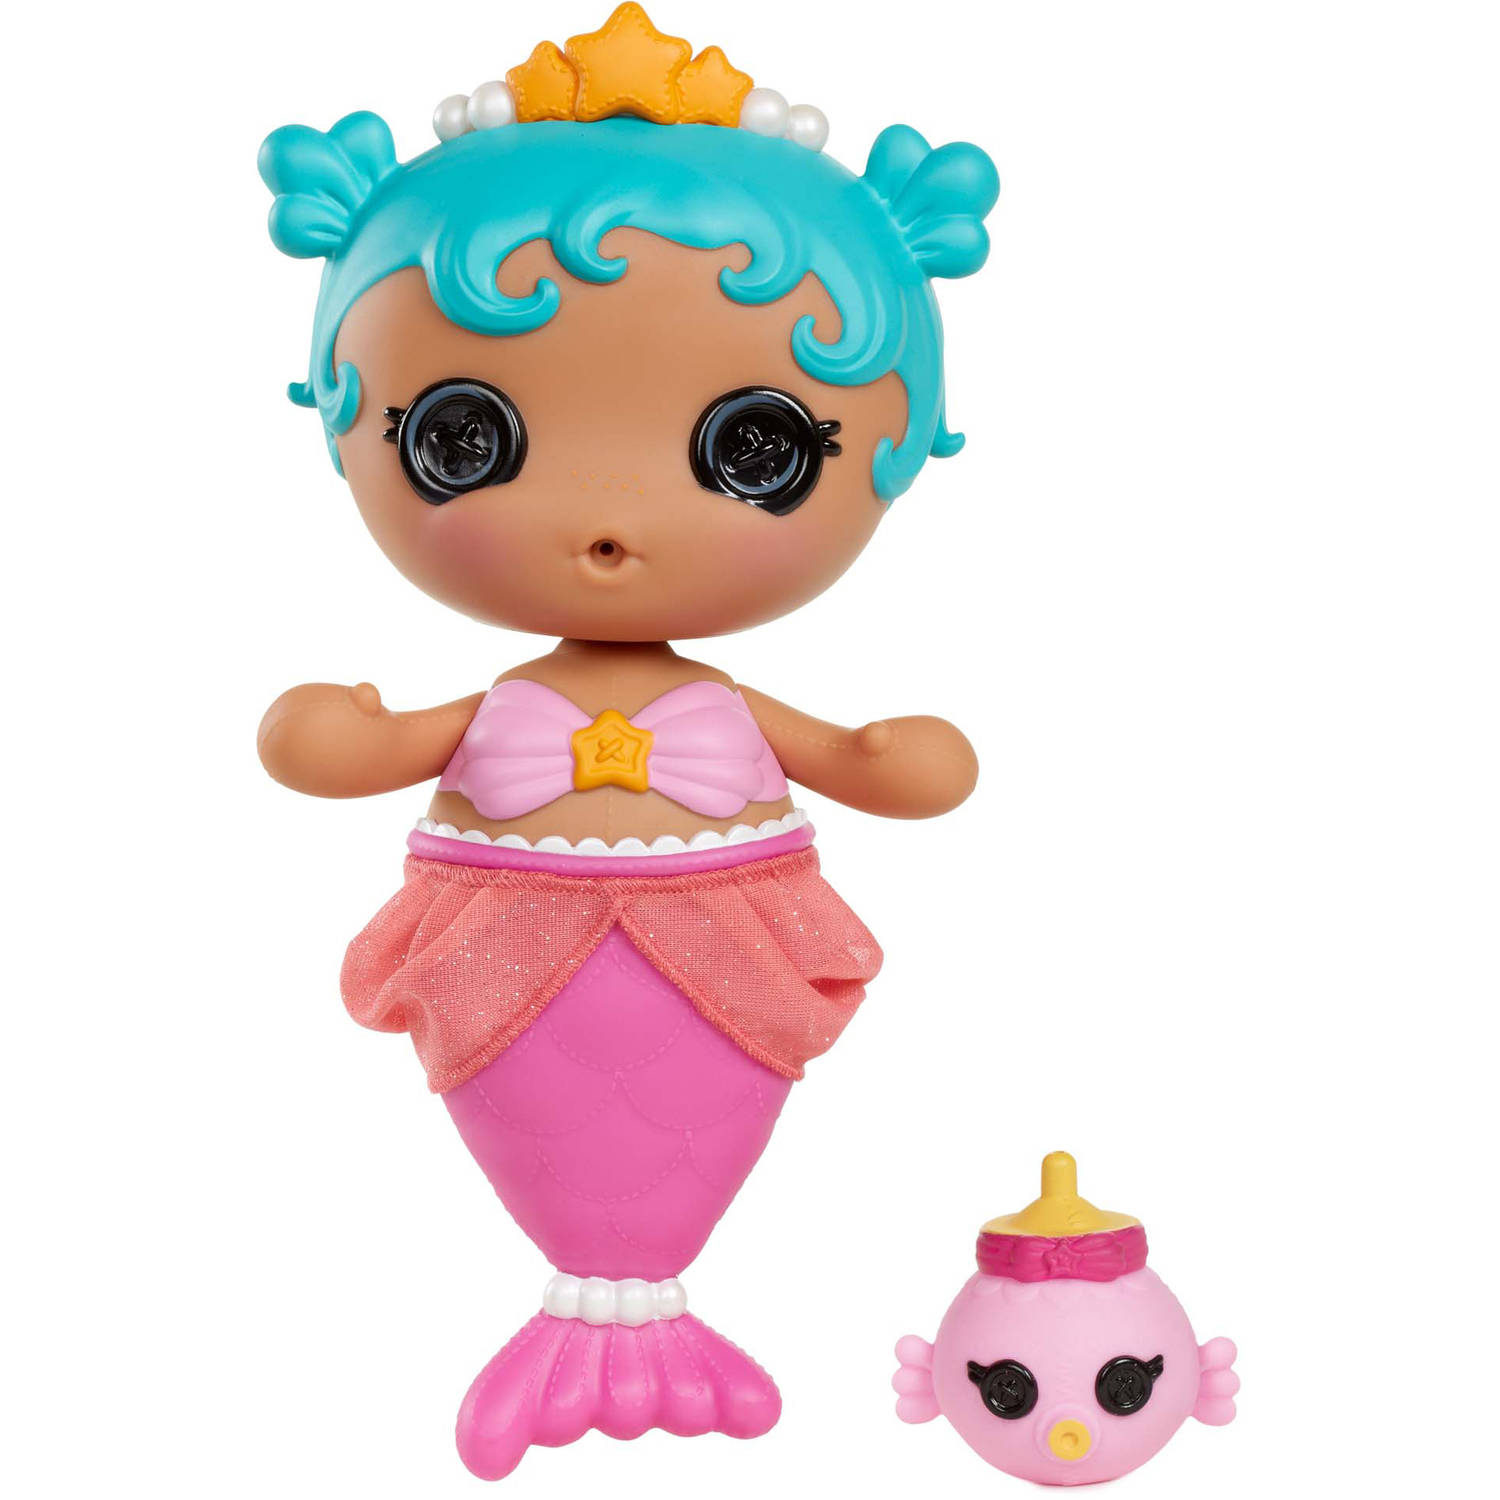 Lalaloopsy Babies Mermaid Doll, Sand E. Starfish